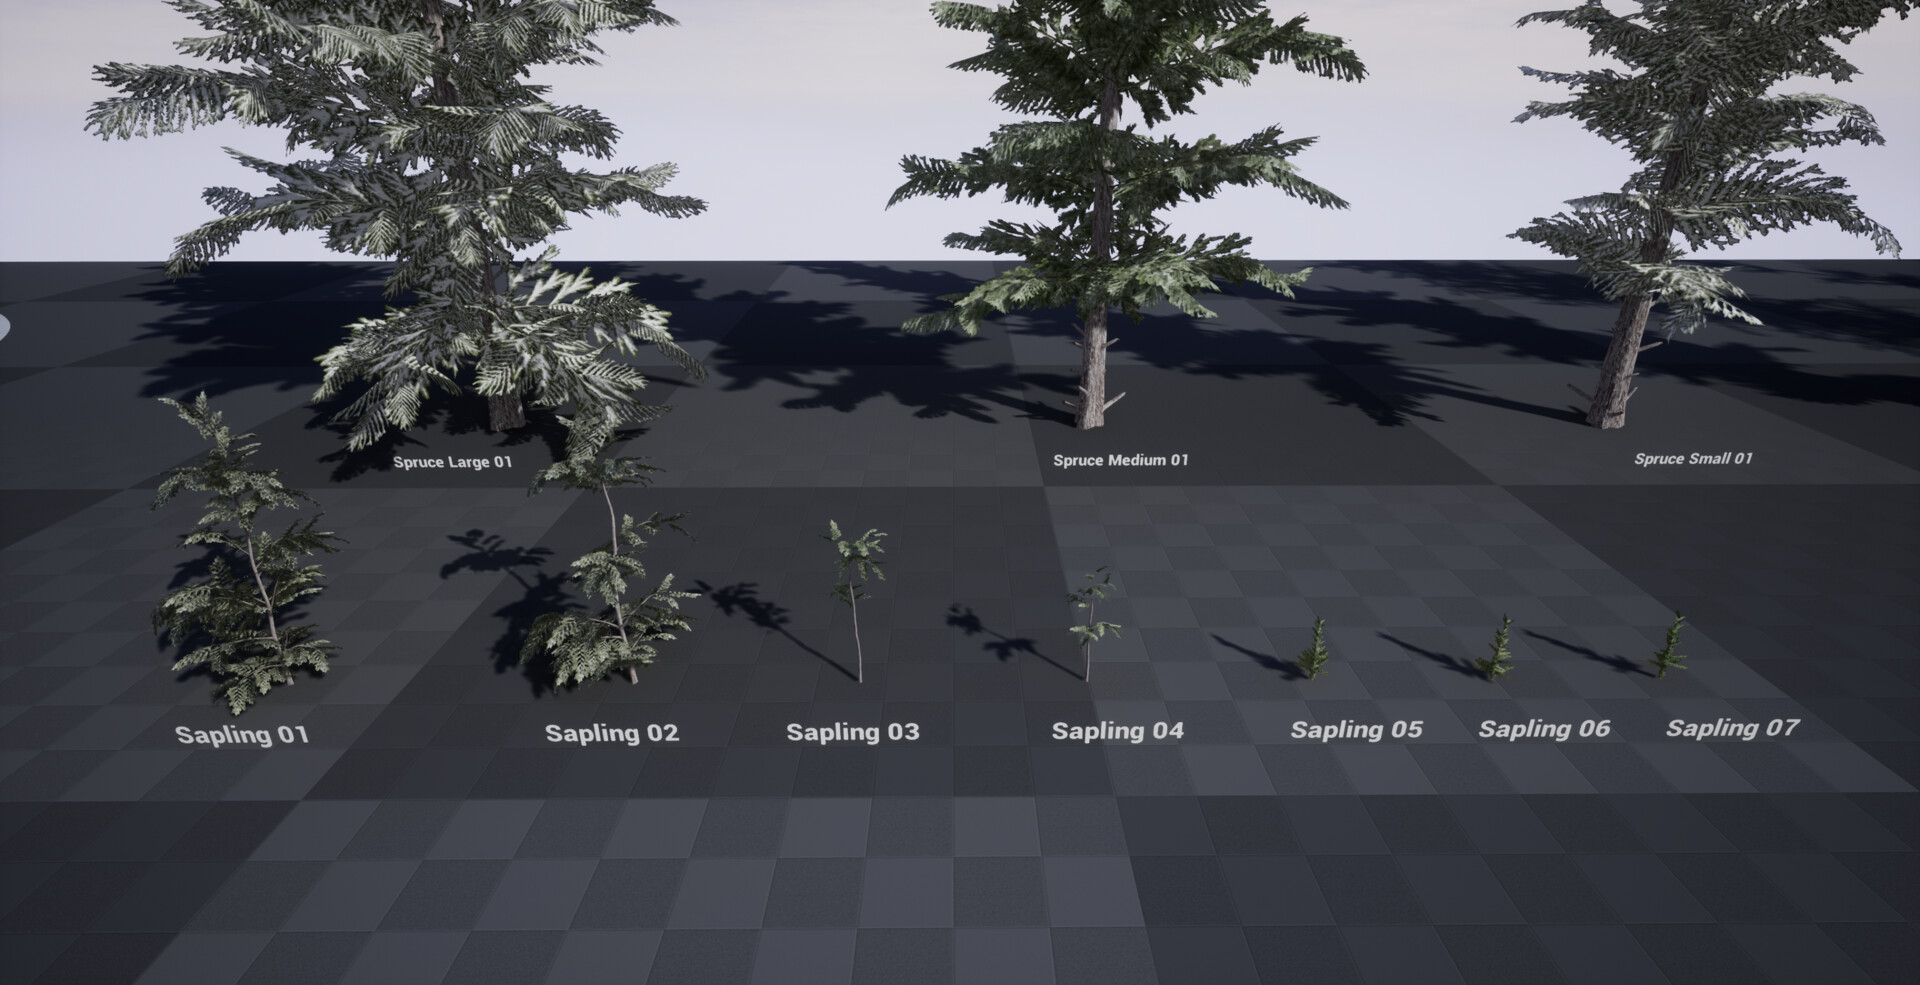 Sapling trees created for the scene.